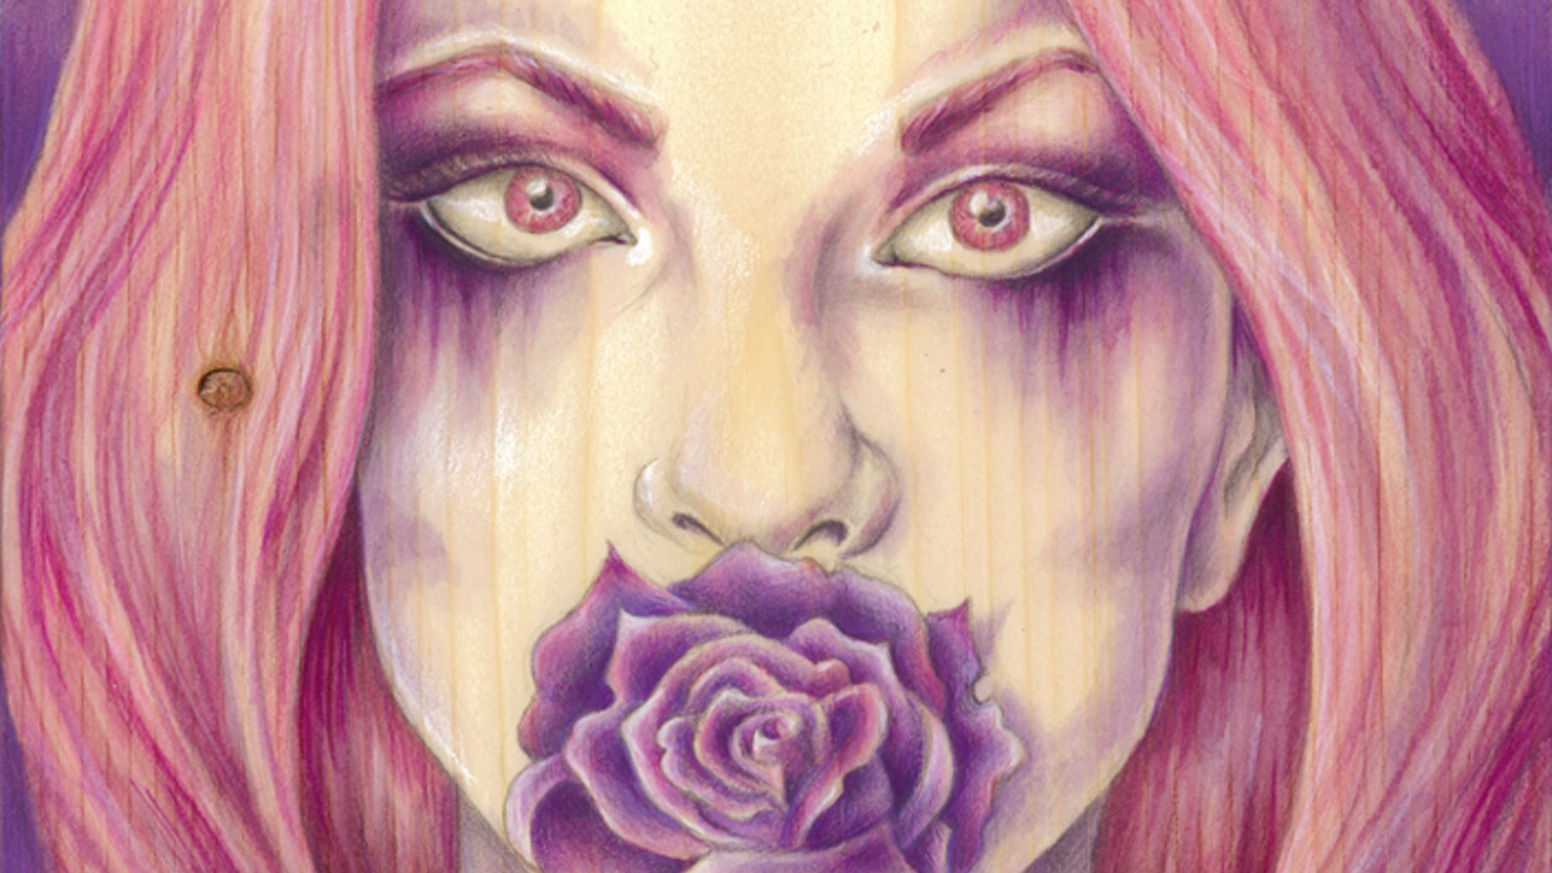 An art book by goth, surrealist, horror artist Jen Lightfoot. The book focuses on women, bodies, sex, and the imagery of nightmares.